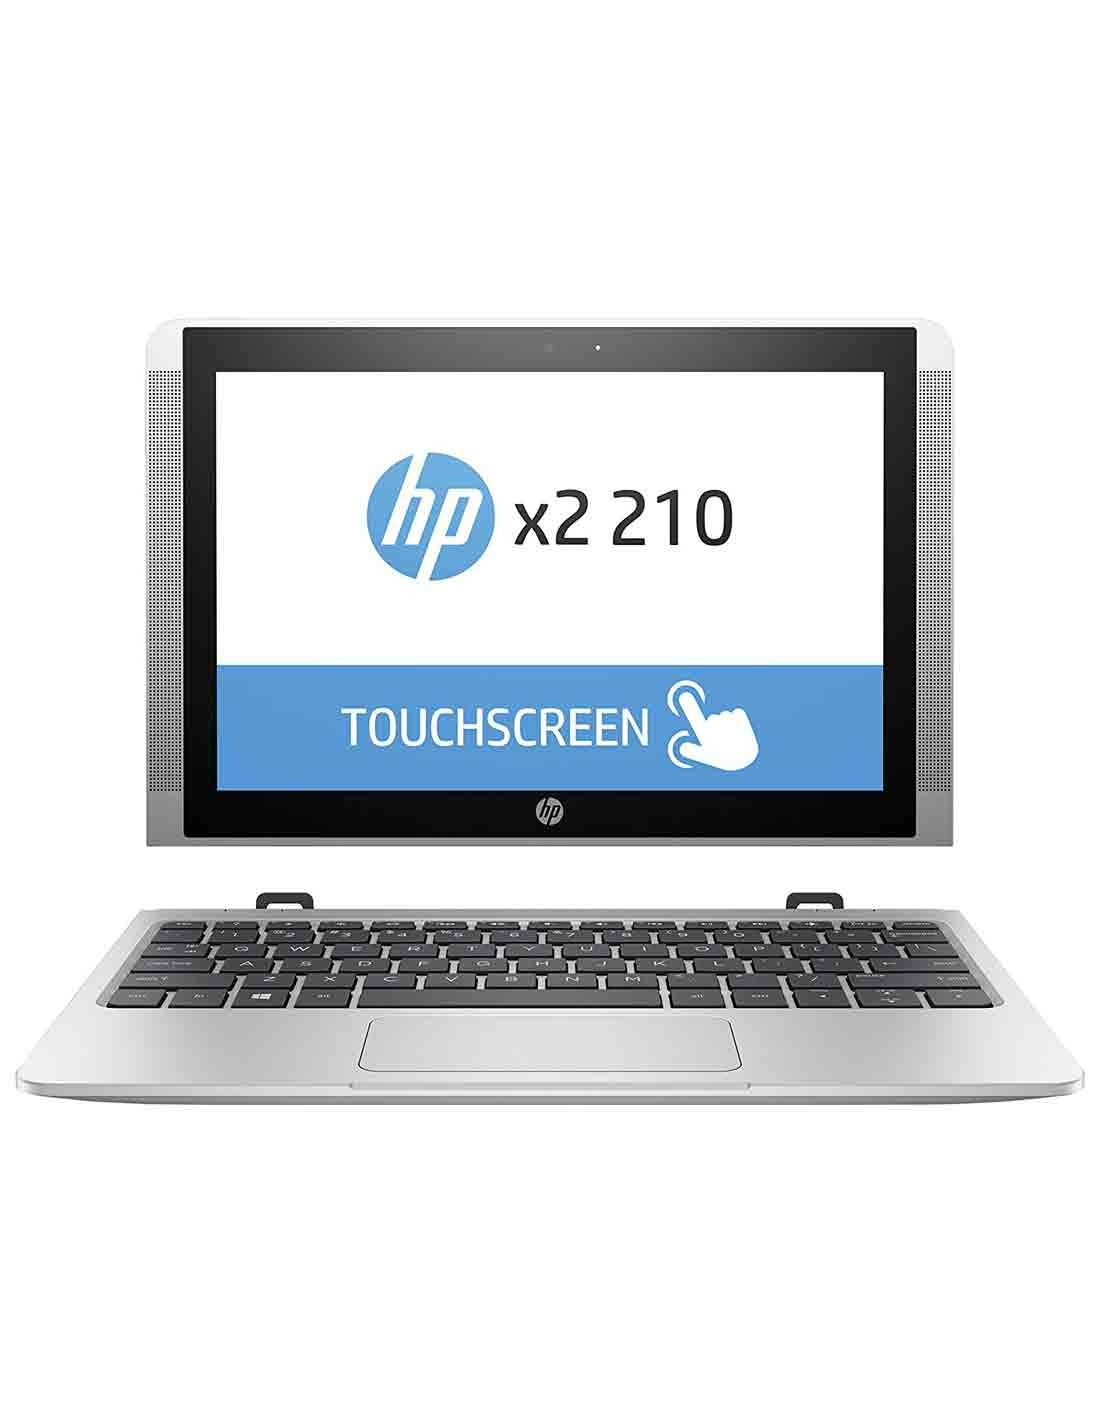 HP x2 210 G2 Detachable 4GB images and photos in Dubai Online Store